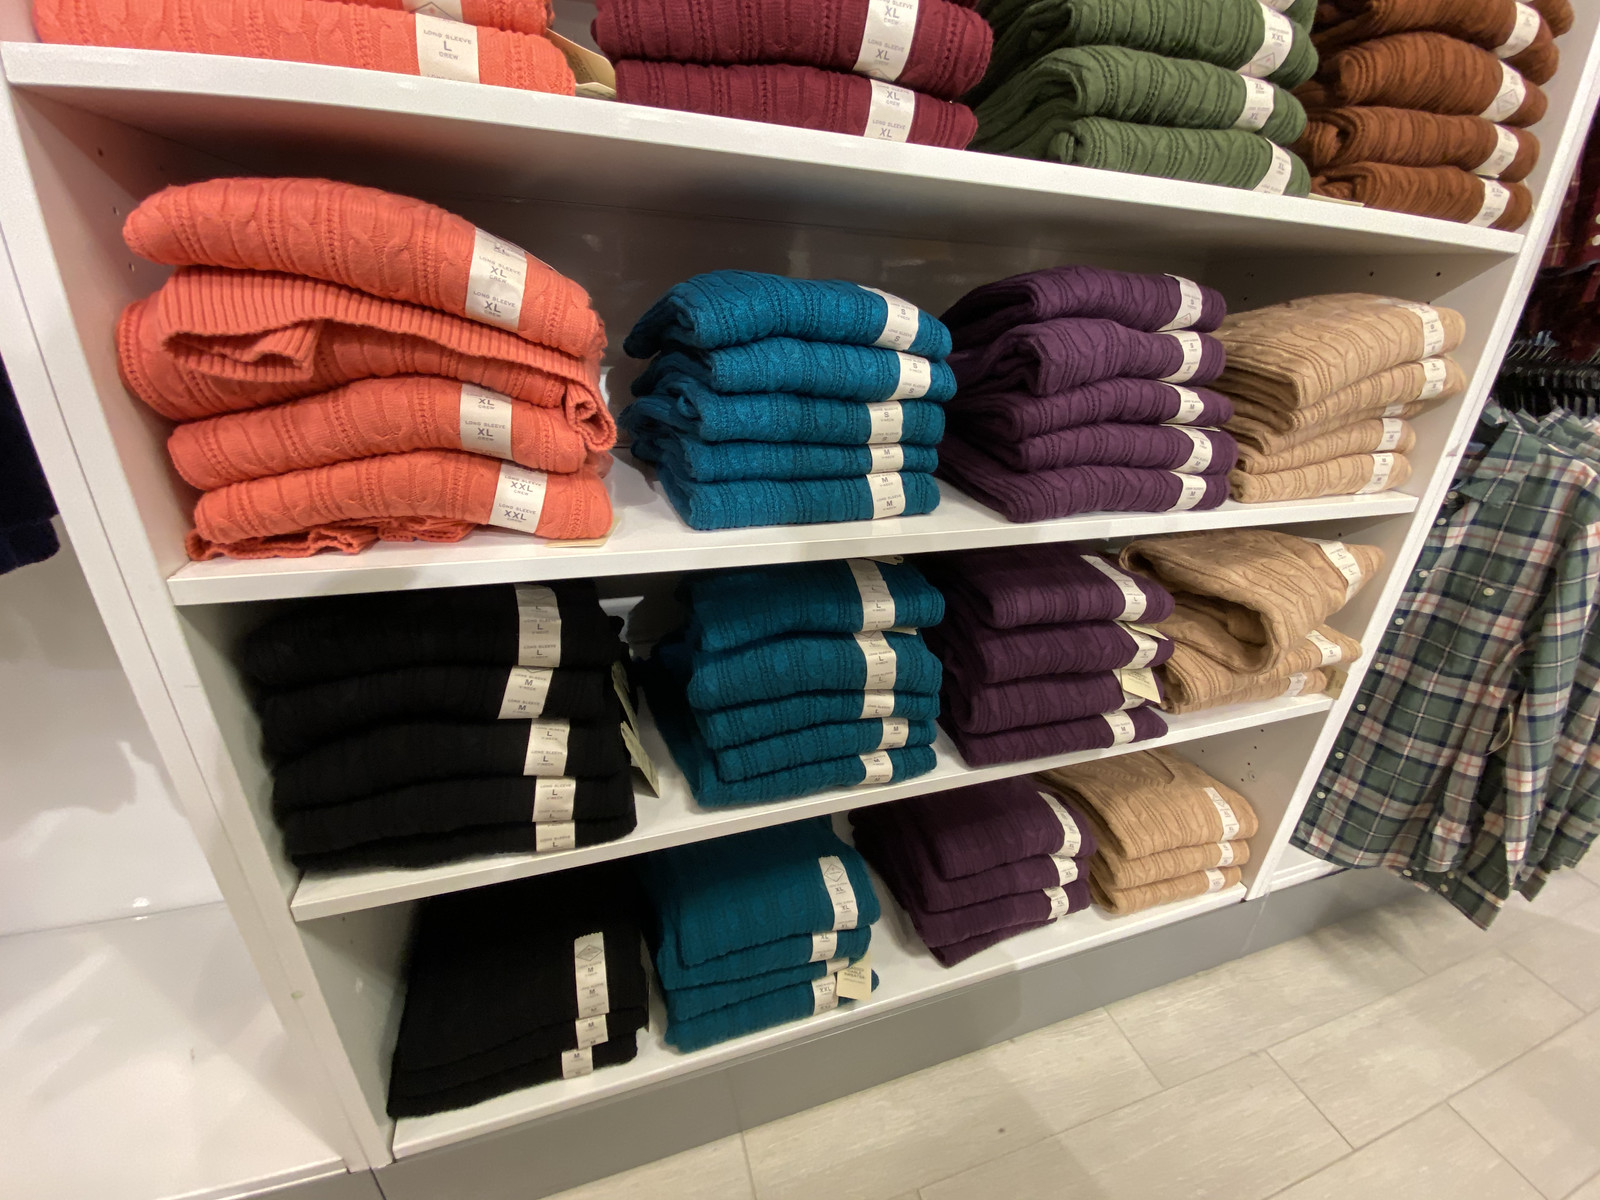 St john's bay sweaters on display at JCPenney